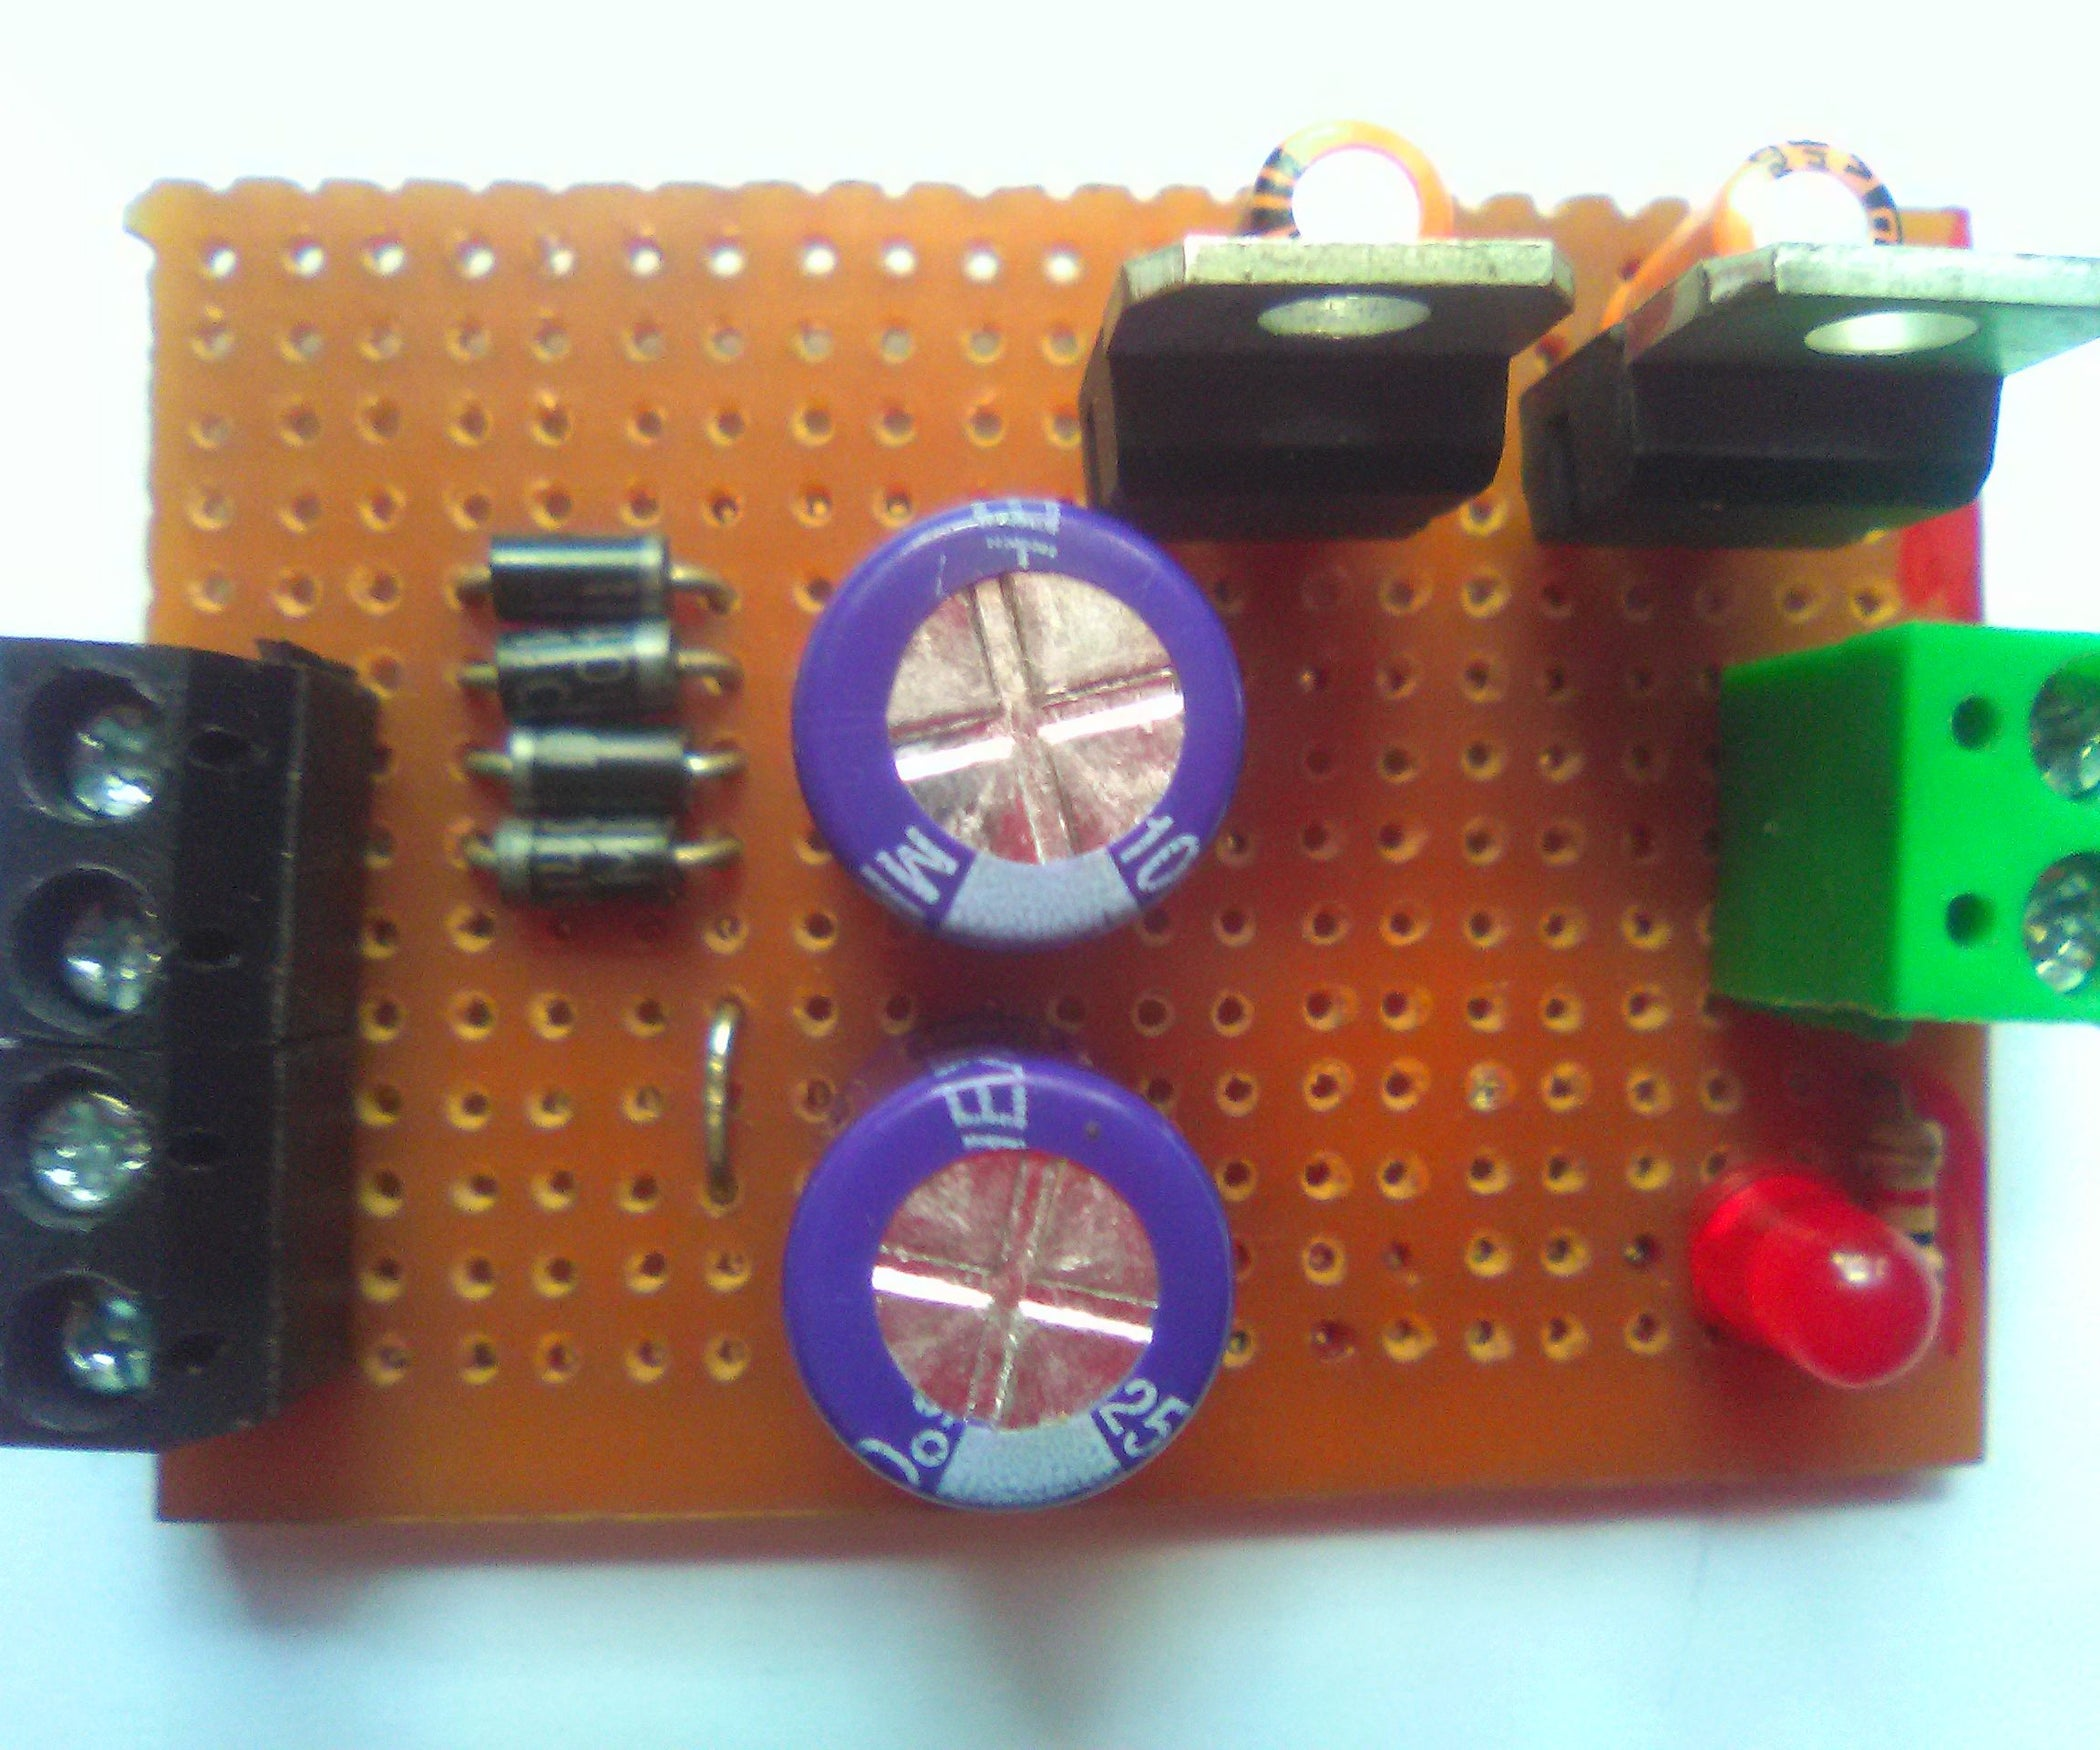 5v And Dual Regulated Power Supply 6 Steps With Pictures Com Circuitdiagram Powersupplycircuit Theinvertercircuit10html